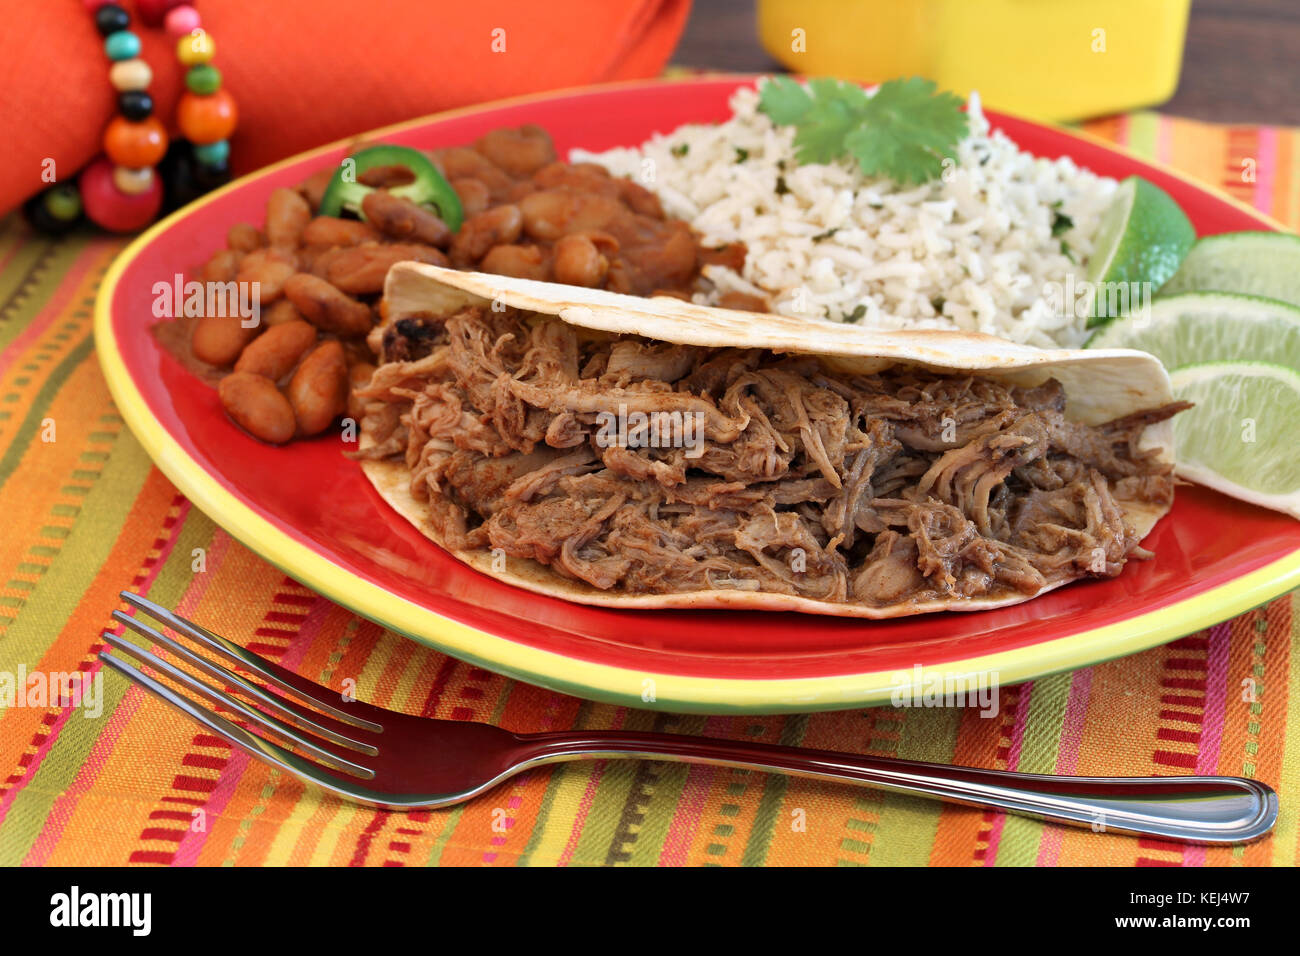 Pulled pork taco with a side of chili beans, basmati rice, and lime slices.  Selective focus on meat. Stock Photo